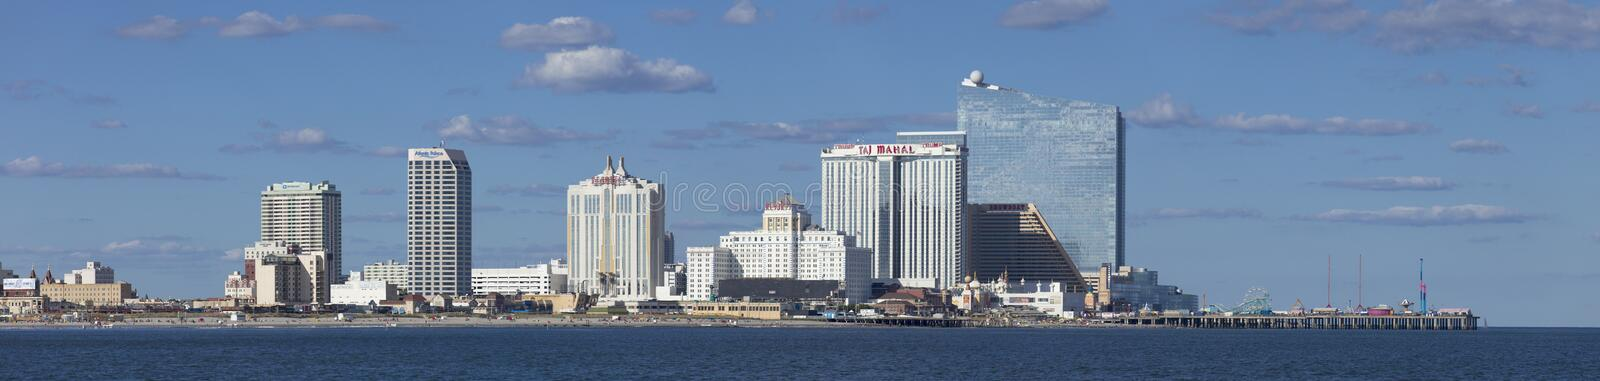 Panoramablick von Atlantic City, New-Jersey vom Ozean stockfotos